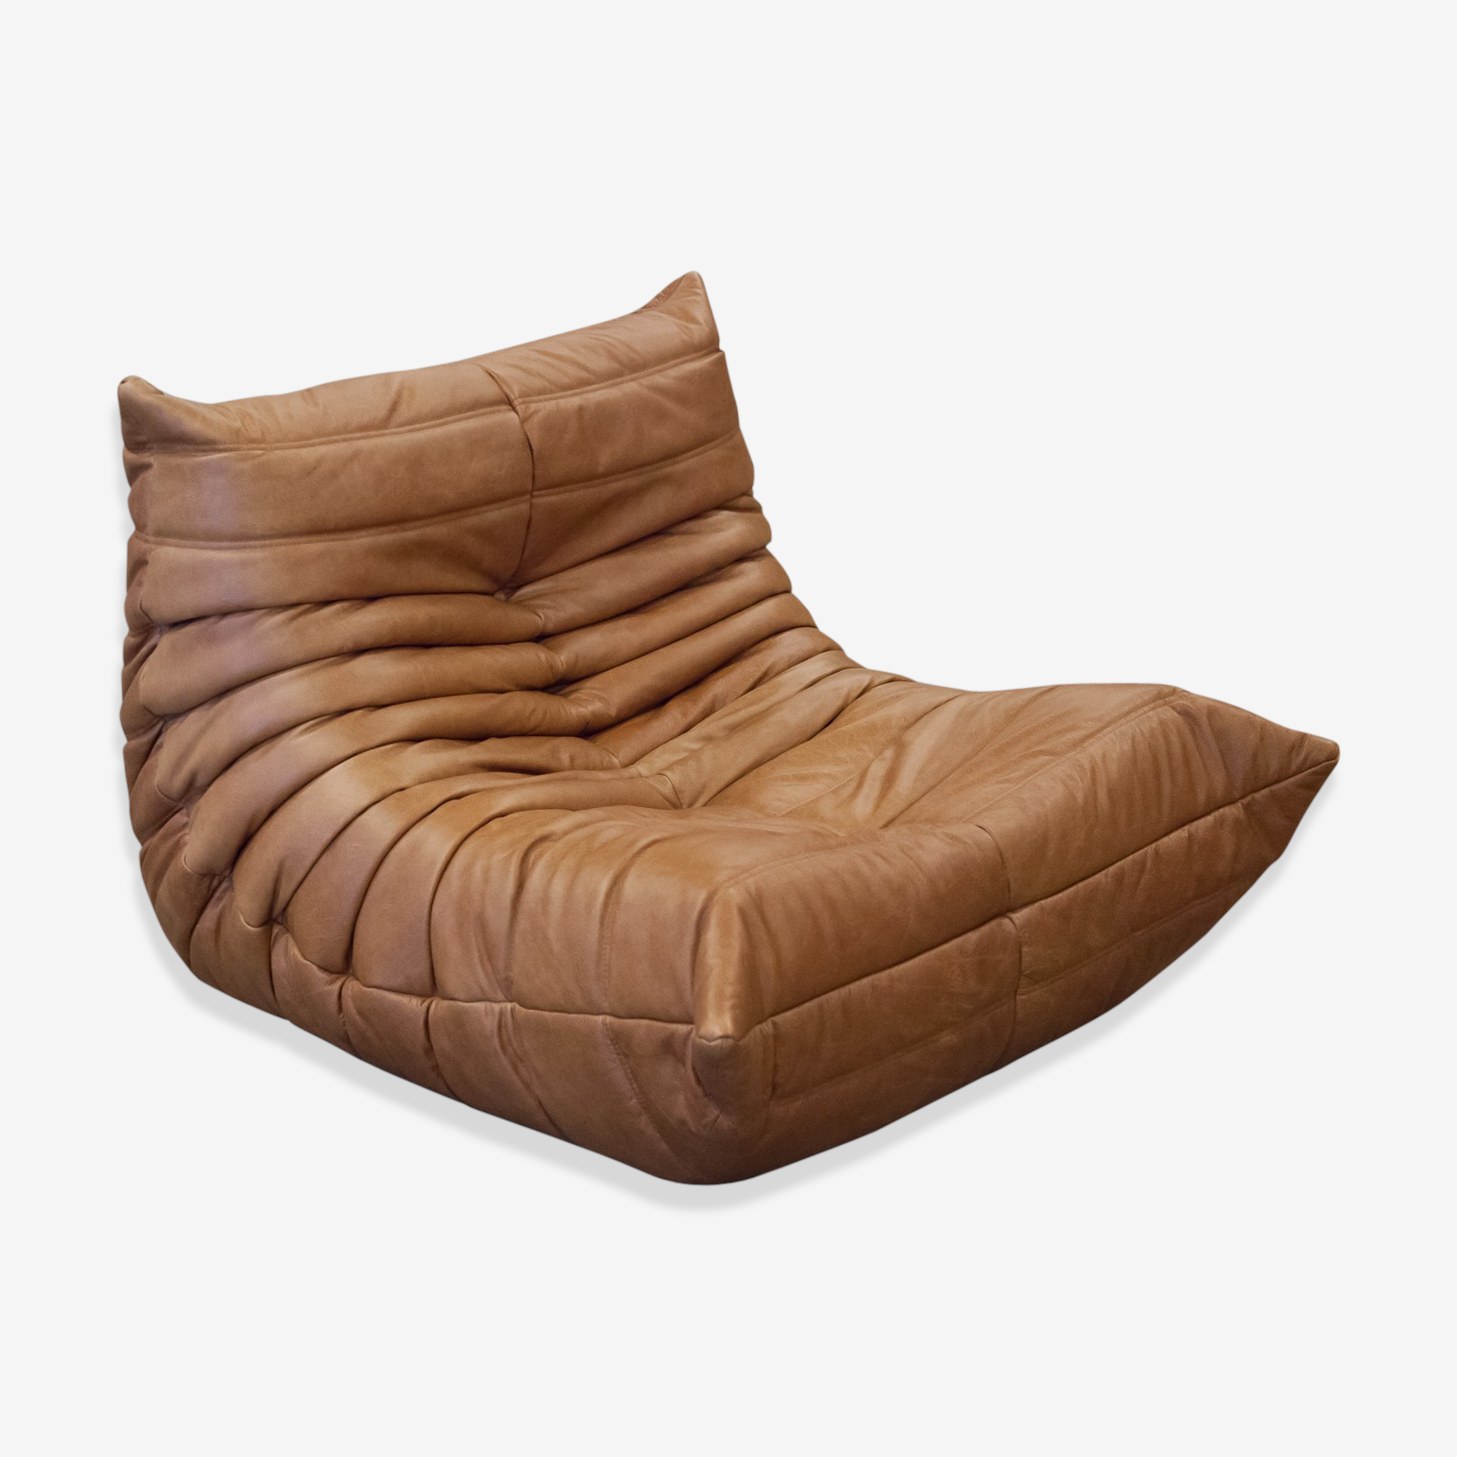 Togo Chair Leather By Michel Ducaroy For Ligne Roset Leather